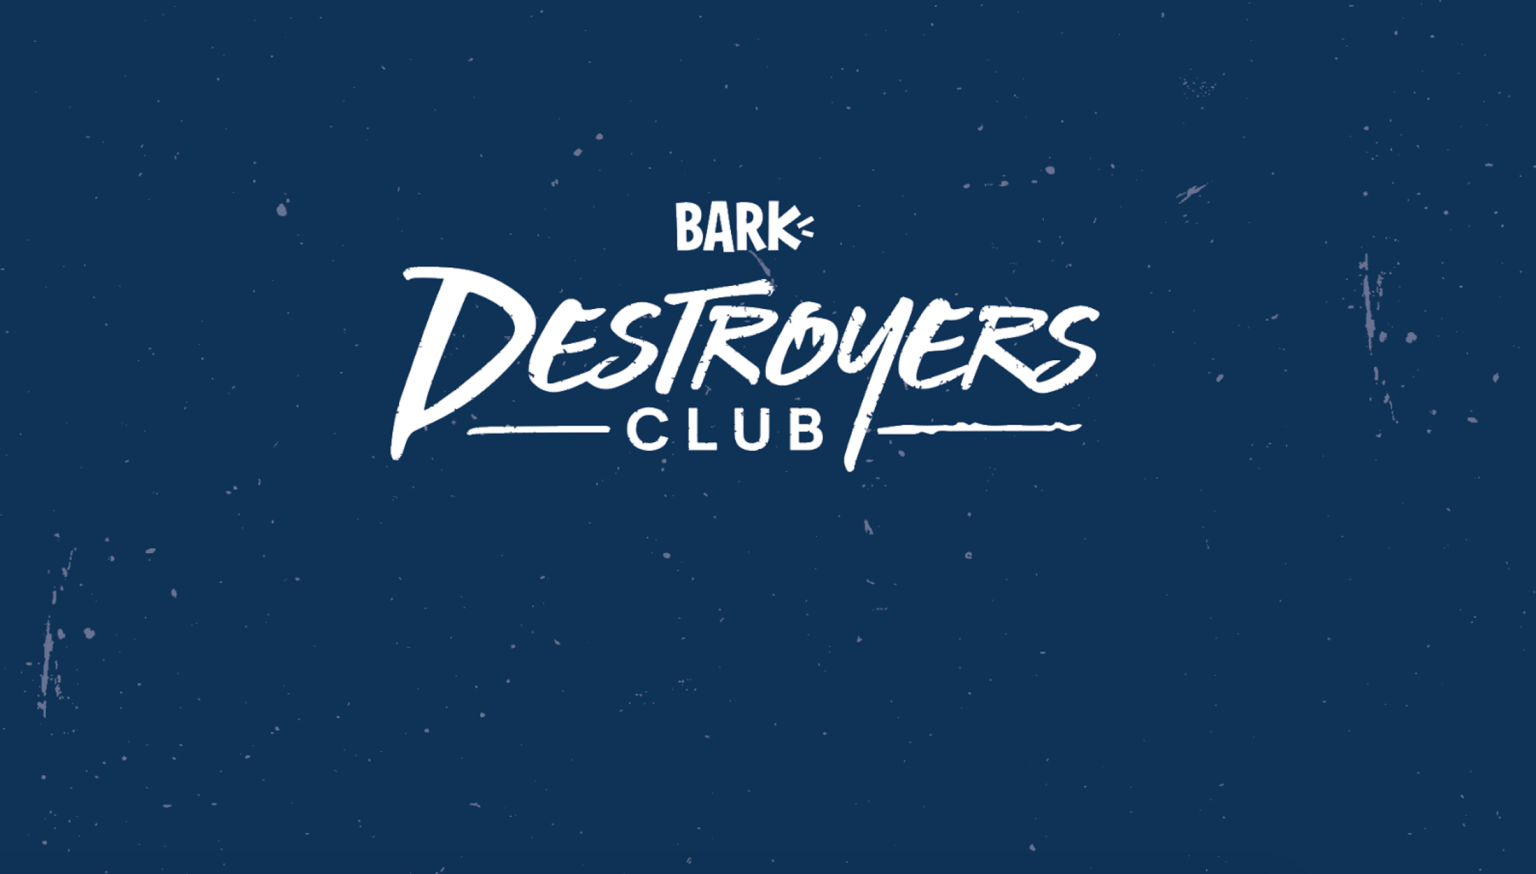 BARK Destroyers Club